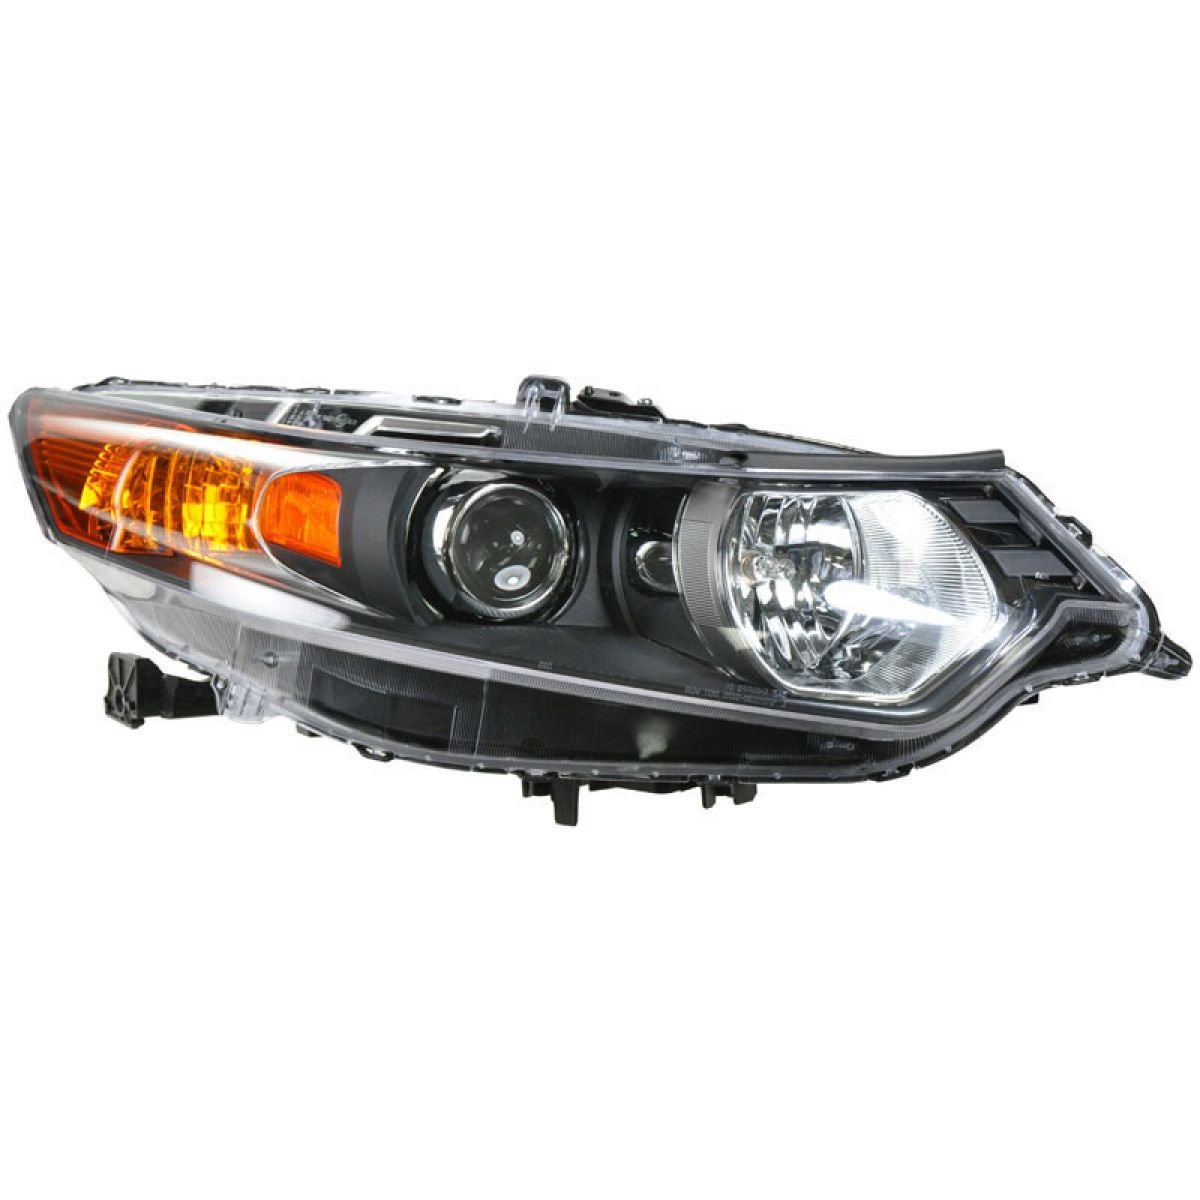 HID Xenon Headlight Headlamp Passenger Side Right RH For